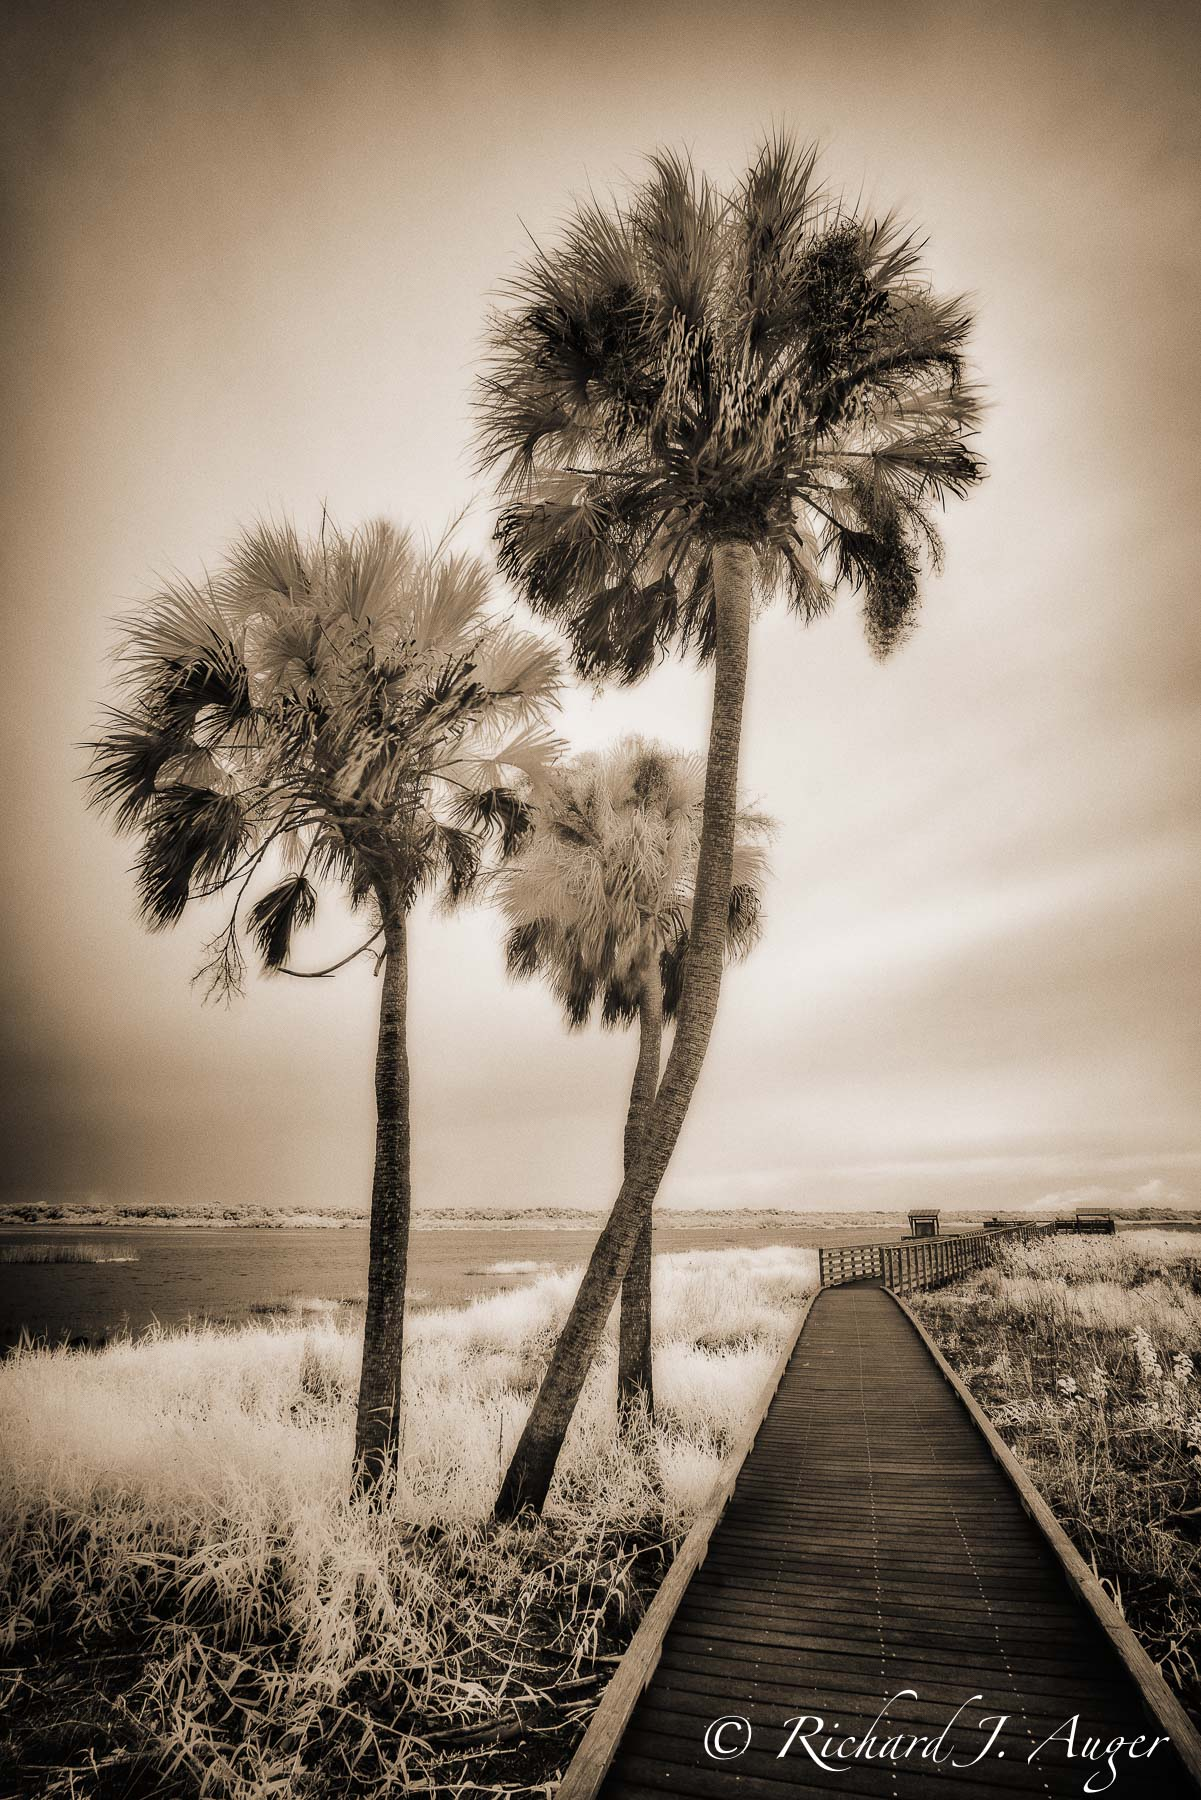 Myakka River State Park, Florida, Palm Trees, Walkway, swamp, infrared, photographer, landscape, sepia tone, monochrome